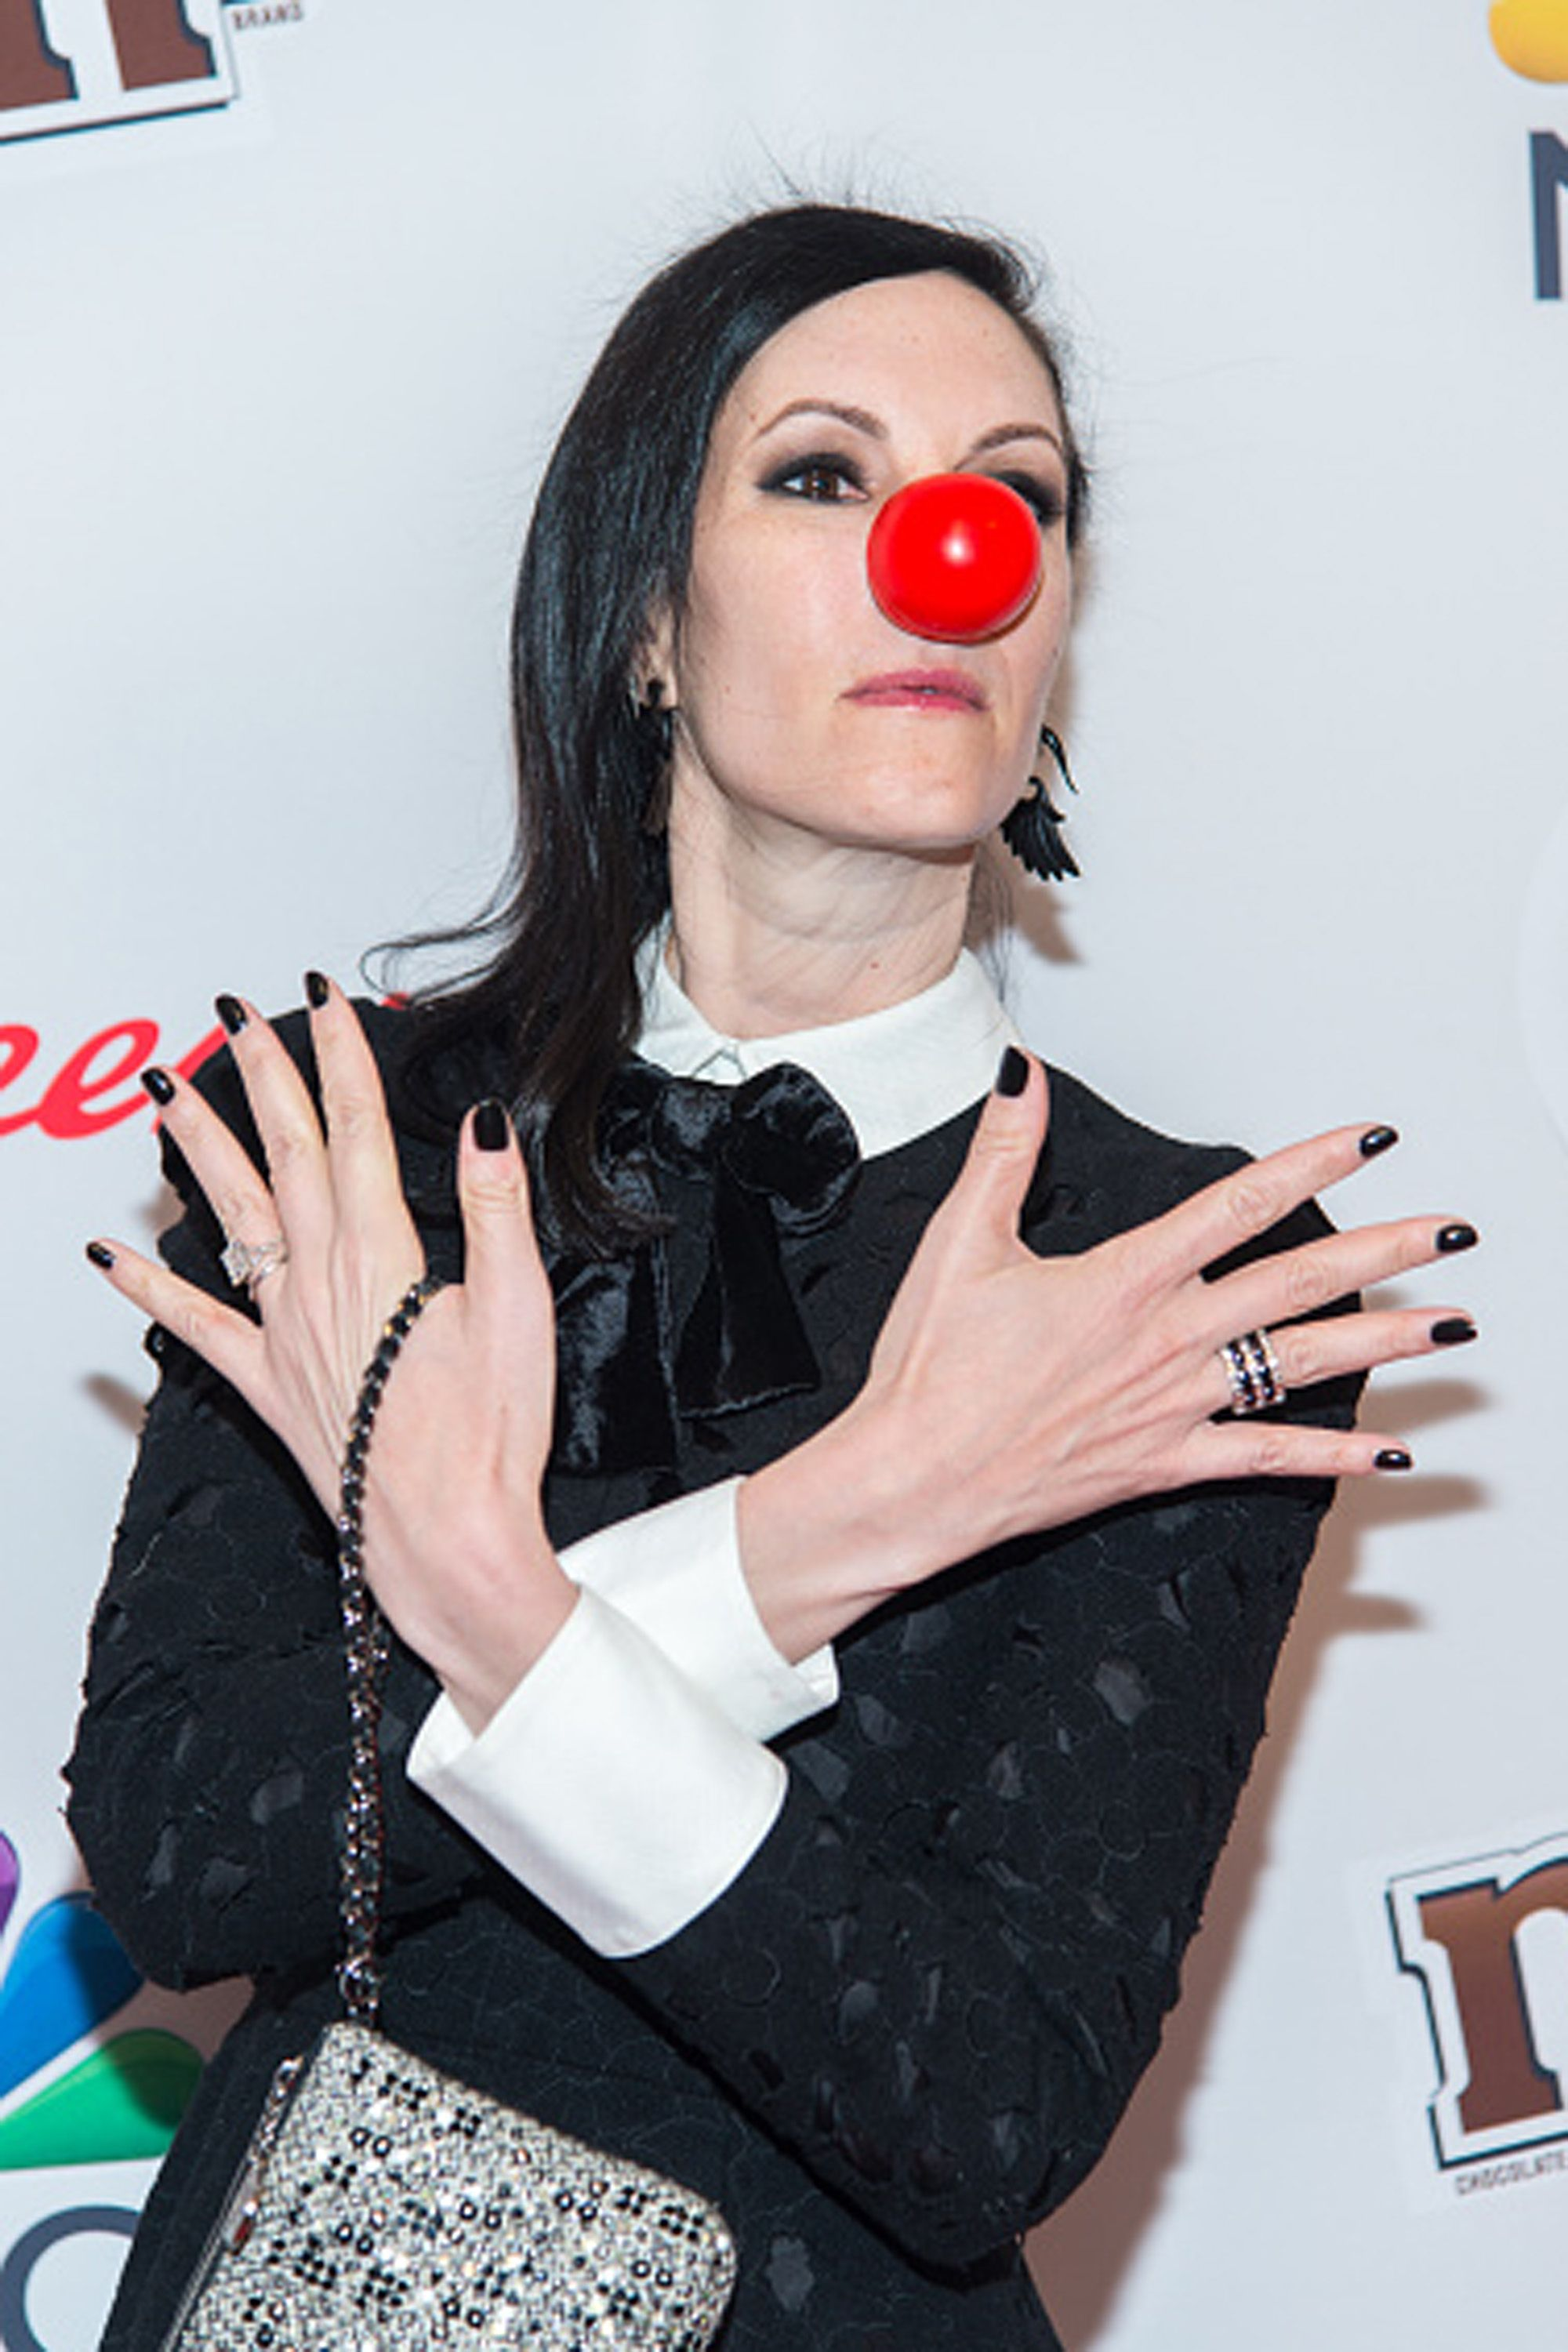 NEW YORK, NY - MAY 21:  Actress/Writer Jill Kargman attends the 2015 Red Nose Day Charity Event at the Hammerstein Ballroom on May 21, 2015 in New York City.  (Photo by Mark Sagliocco/Getty Images)